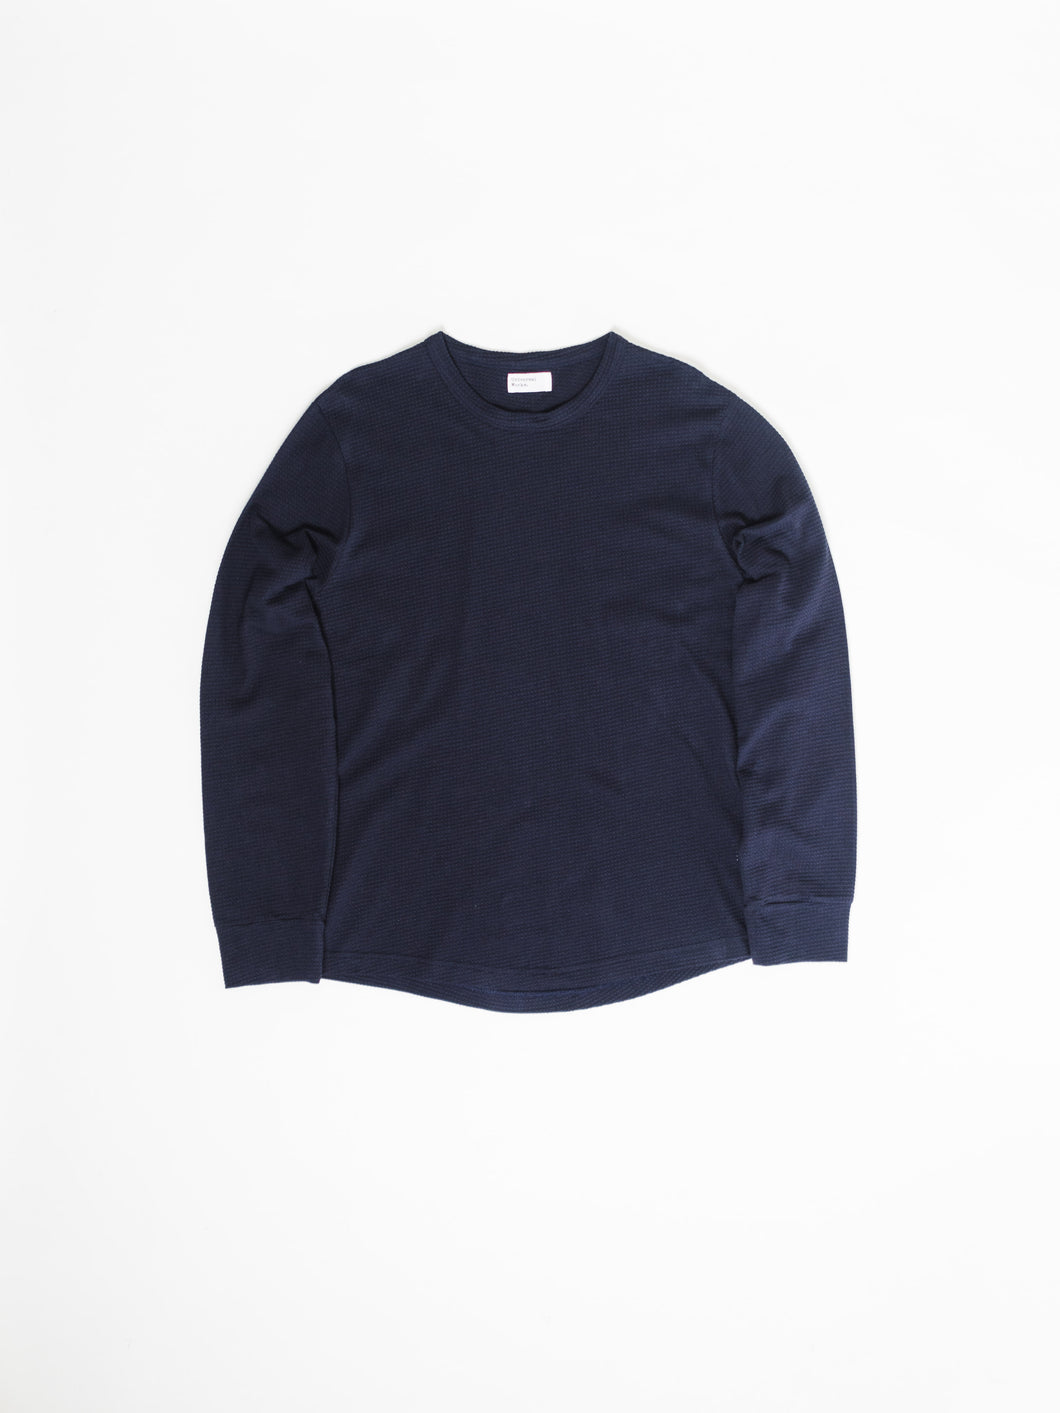 UNIVERSAL WORKS NAVY LONG SLEEVE WAFFLE CREW